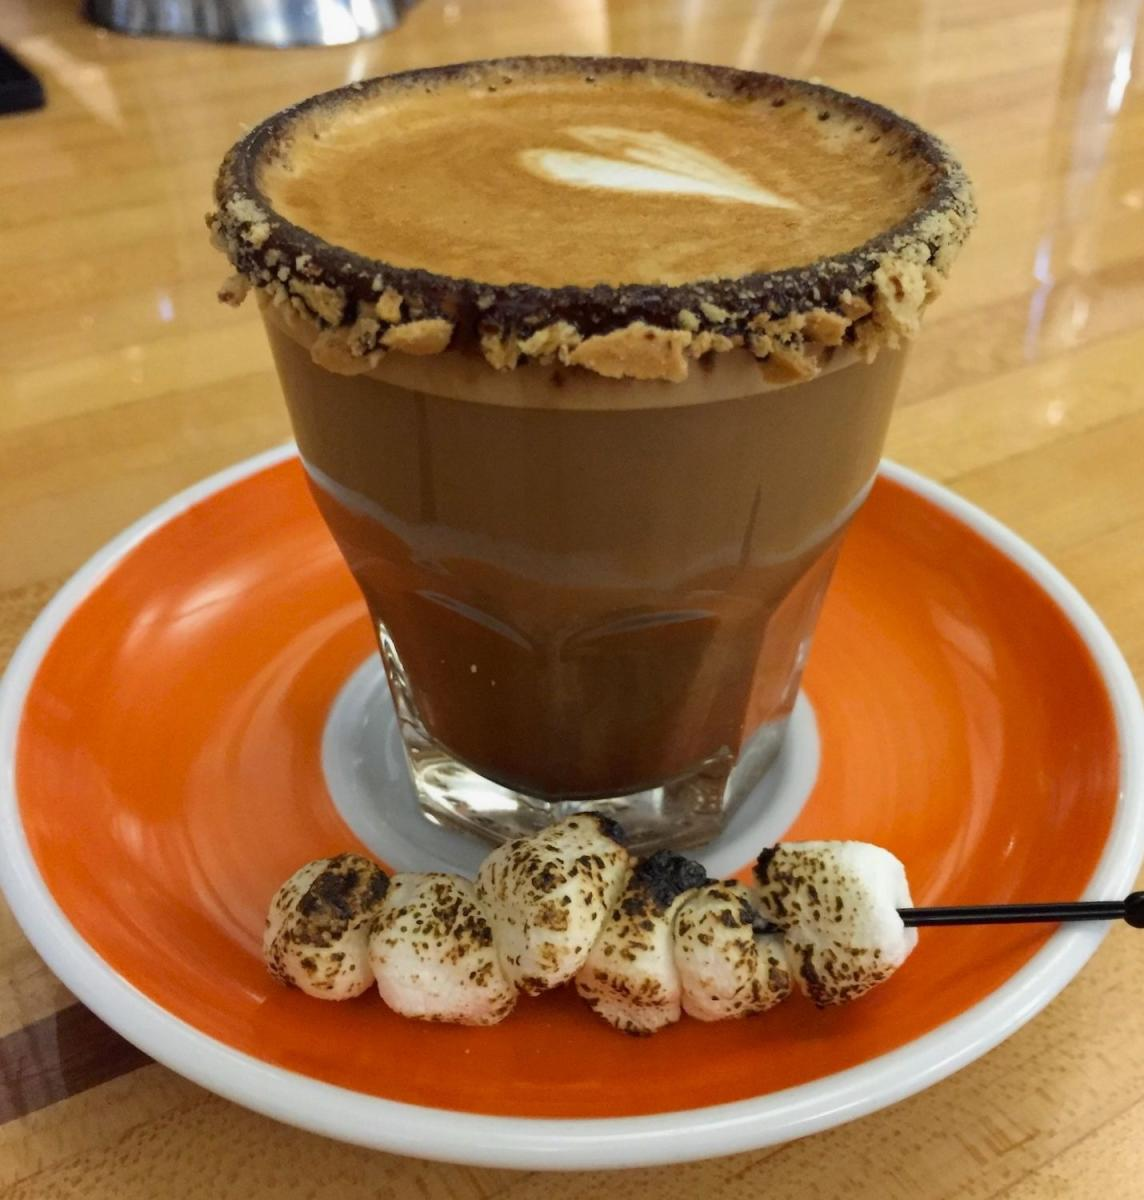 Smortado coffee from Roosevelt Coffee pictured on saucer with toasted marshmallow garnish and gram cracker-crusted rim